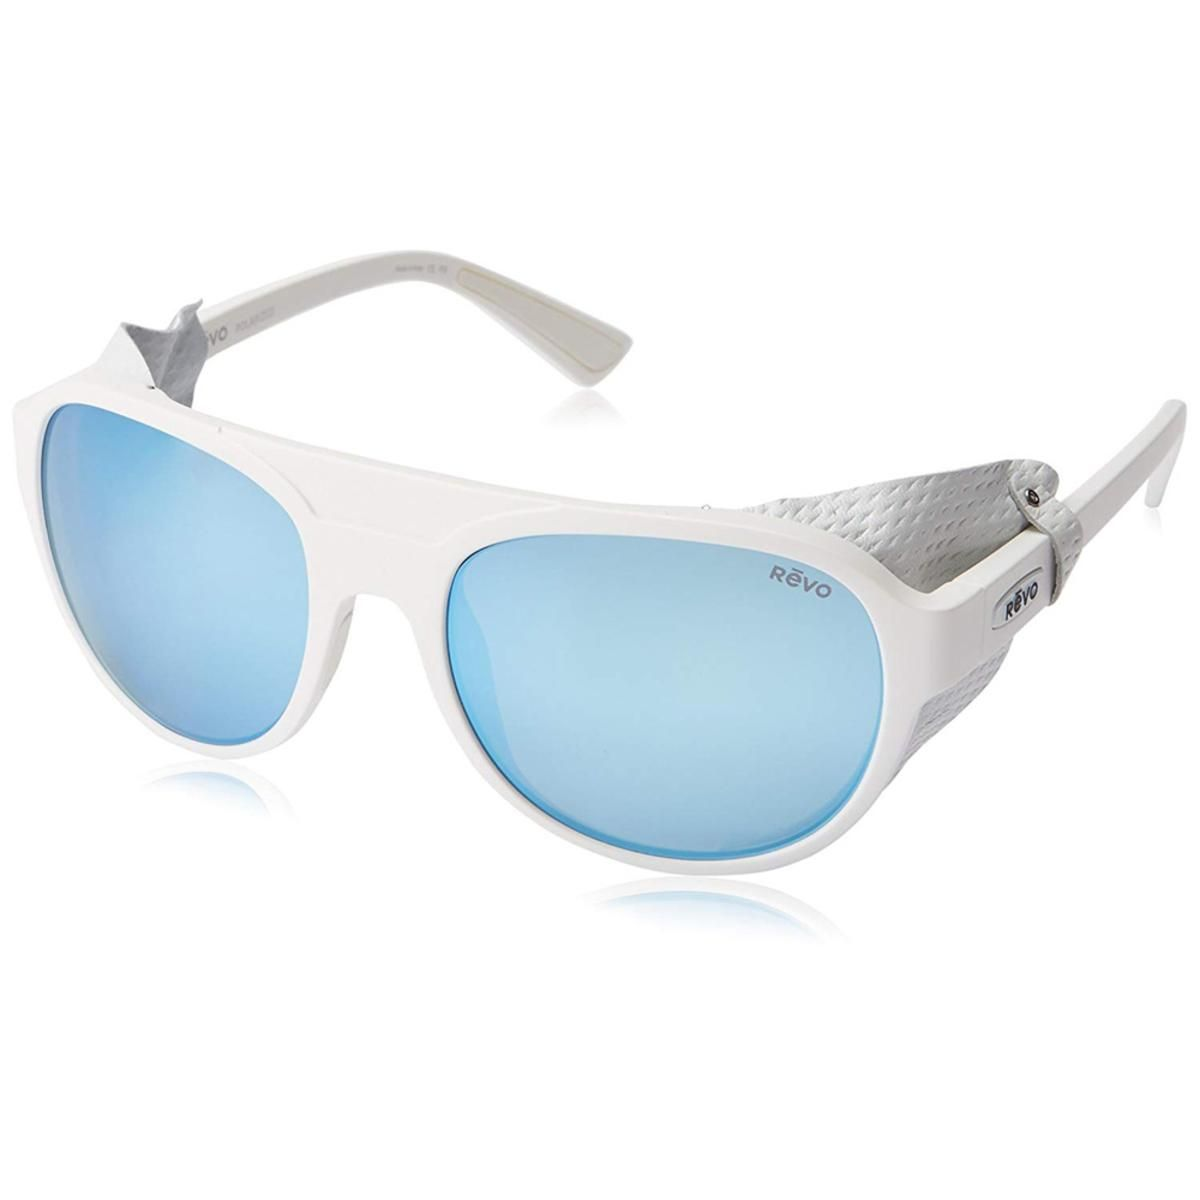 496e2becfe4 Revo Unisex Traverse Glacier Sunglasses Blue Water Lens with White Frame -  The Warming Store